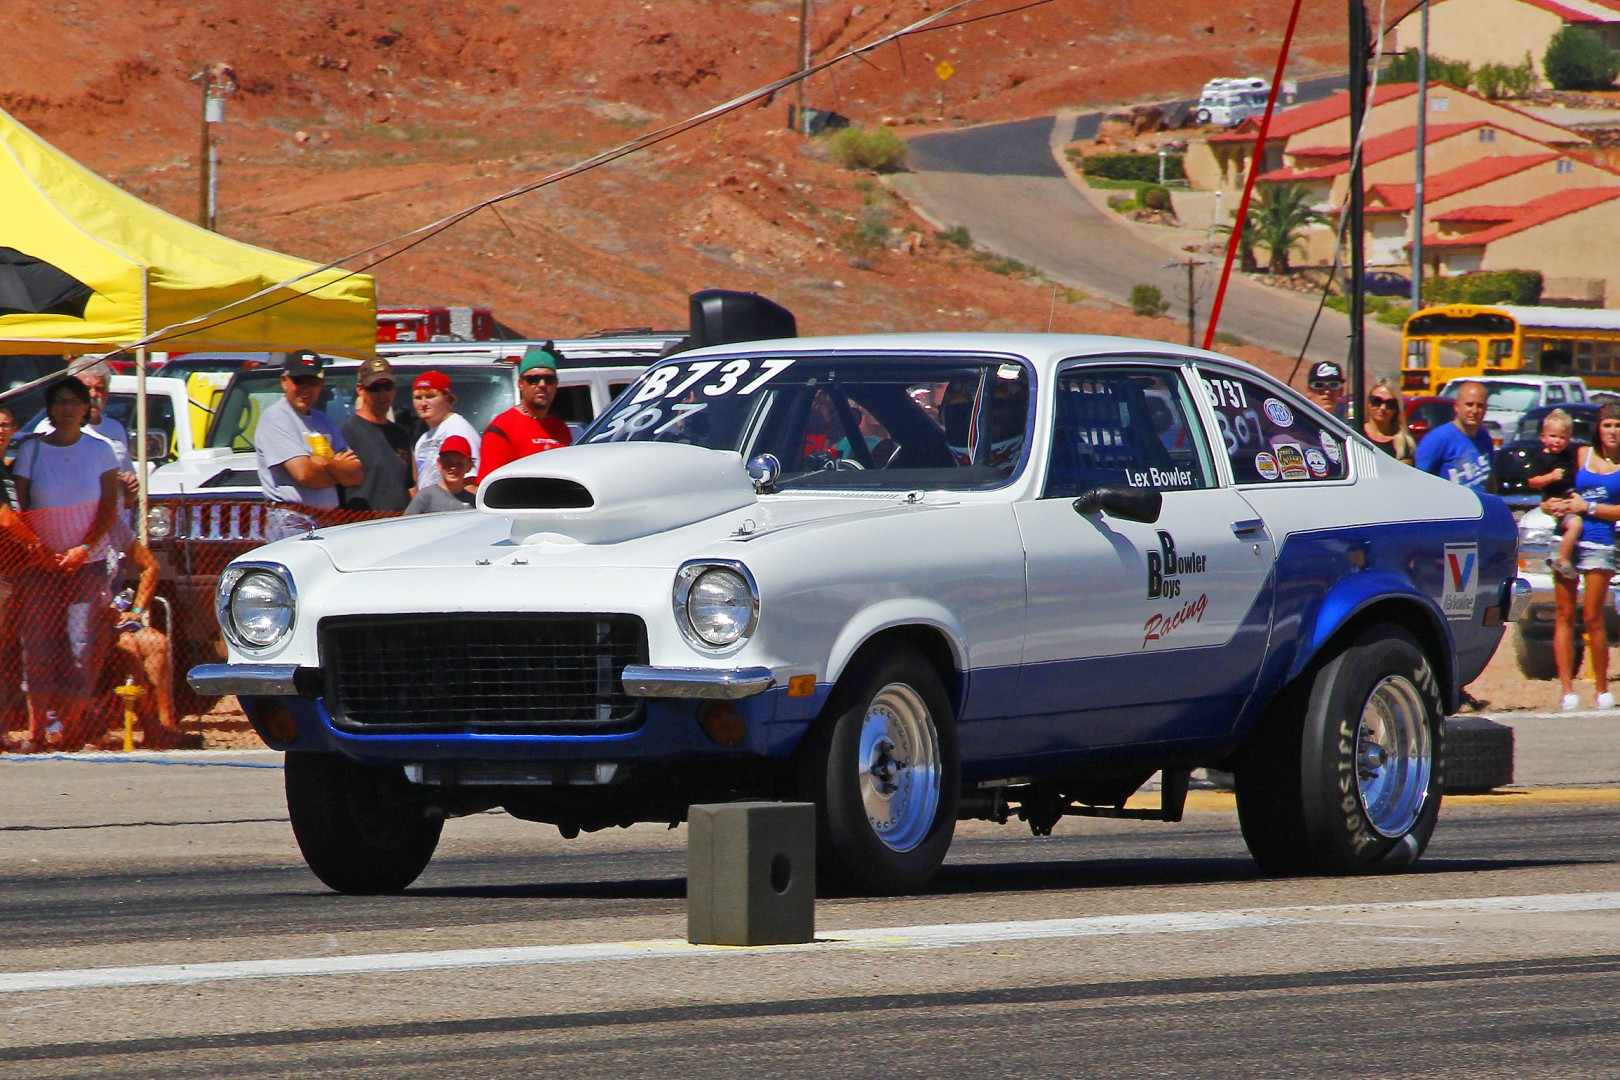 FILE - Lex Bowler, one of the old school drag racers here in St. George, puts the squat on those Hoosier tires as he launches his 1972 Chevy Vega. BlackRock Motorsports Drag Race, old airport St. George, Utah, Sept. 21-22, 2013 | Photo by John Teas, St. George News